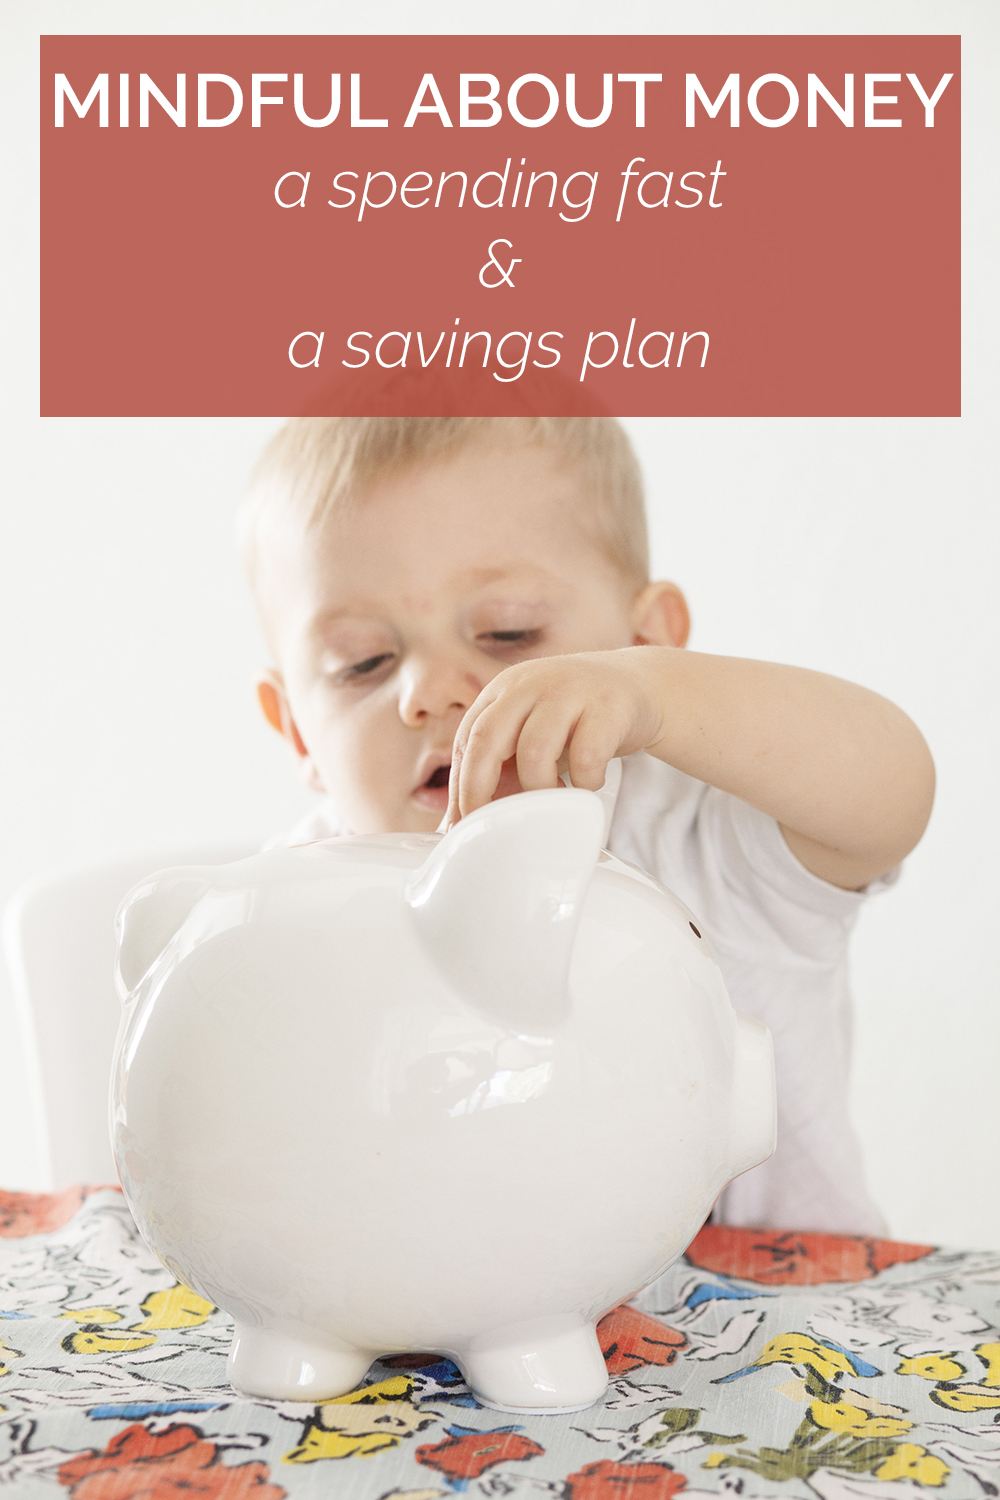 A spending fast & a savings plan: what we're doing to build our savings and be mindful about our spending habits